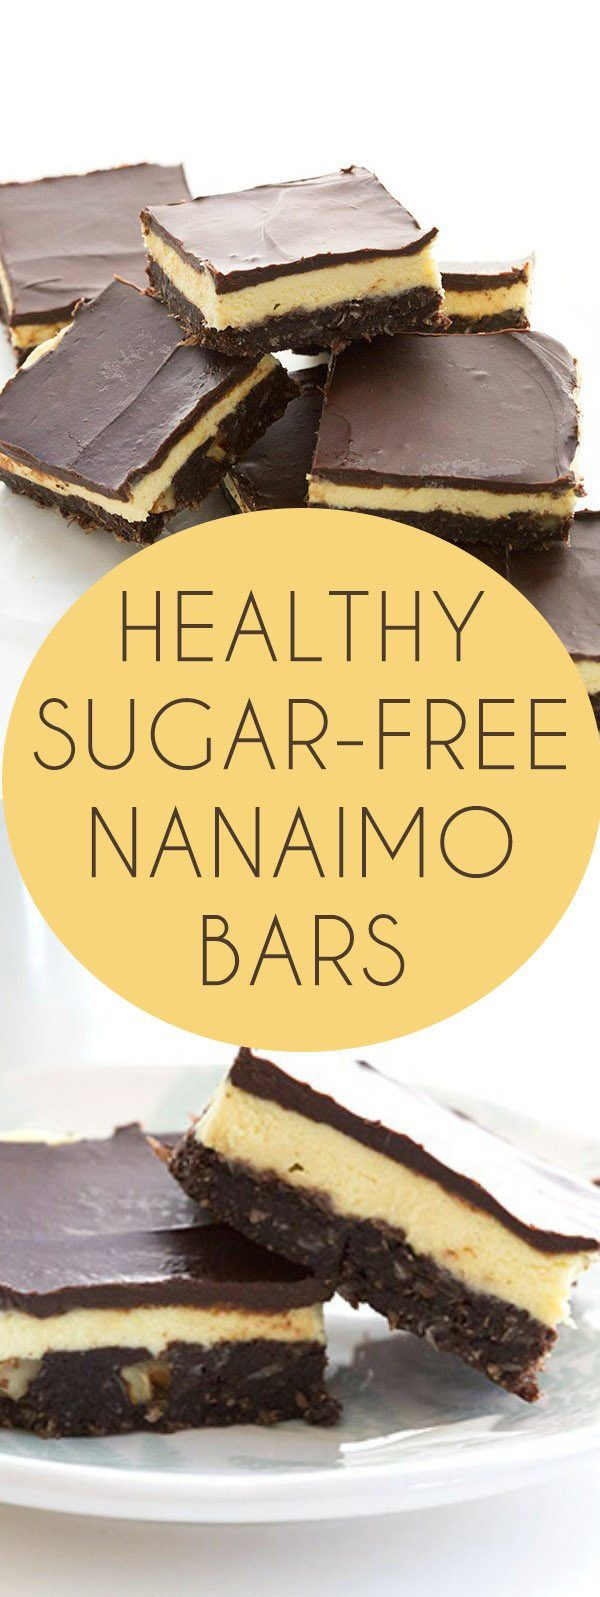 New and improved low carb Nanaimo Bar recipe. Sugar-free, no artificial sweeteners, grain-free, trim healthy mama via @dreamaboutfood